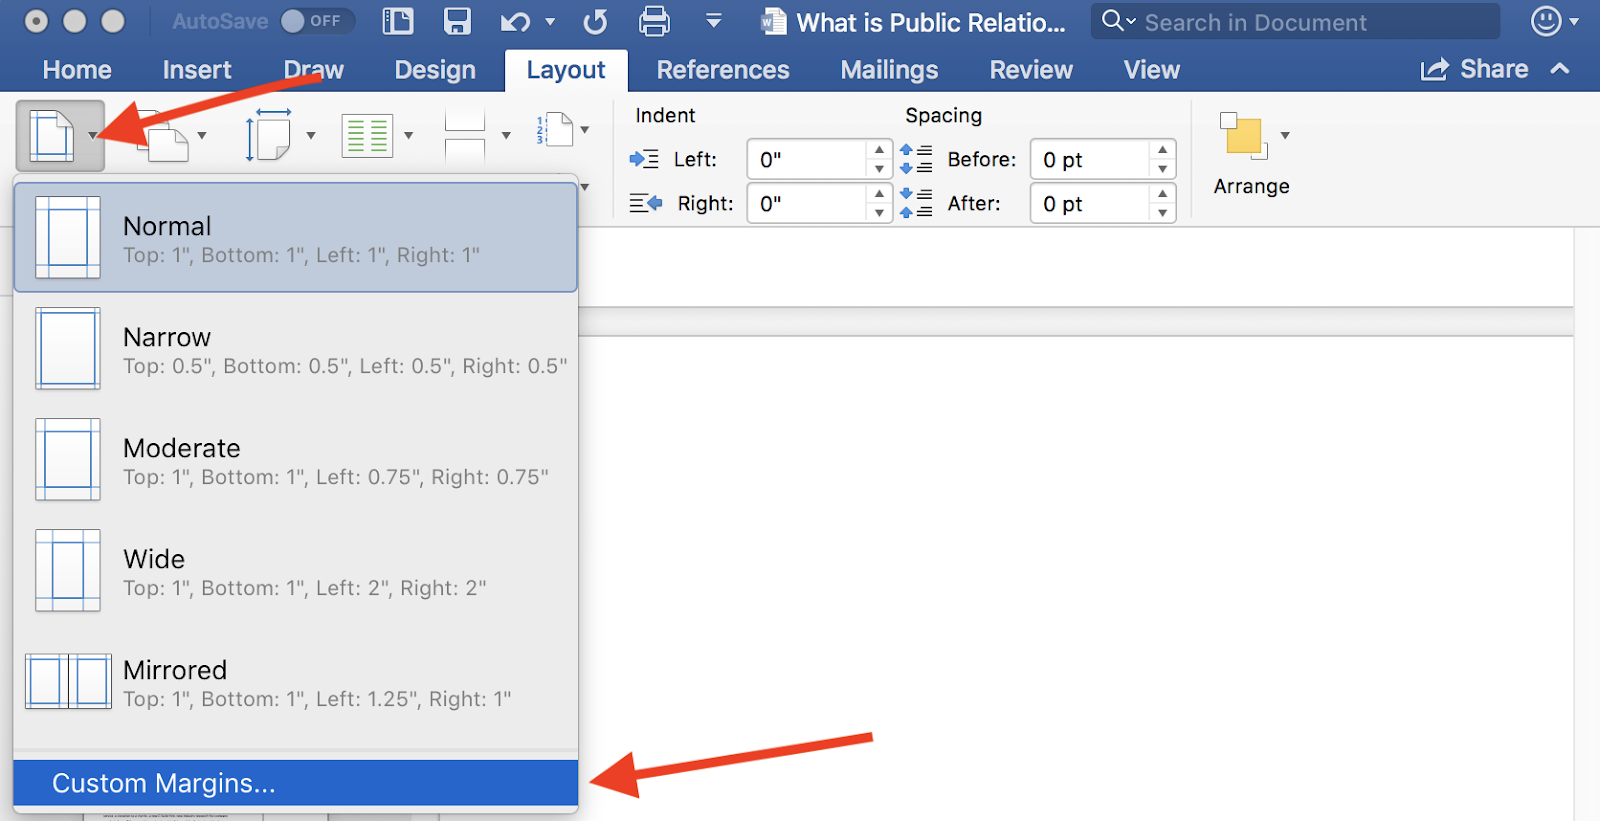 How to Delete a Page in Word (6 Easy Ways)